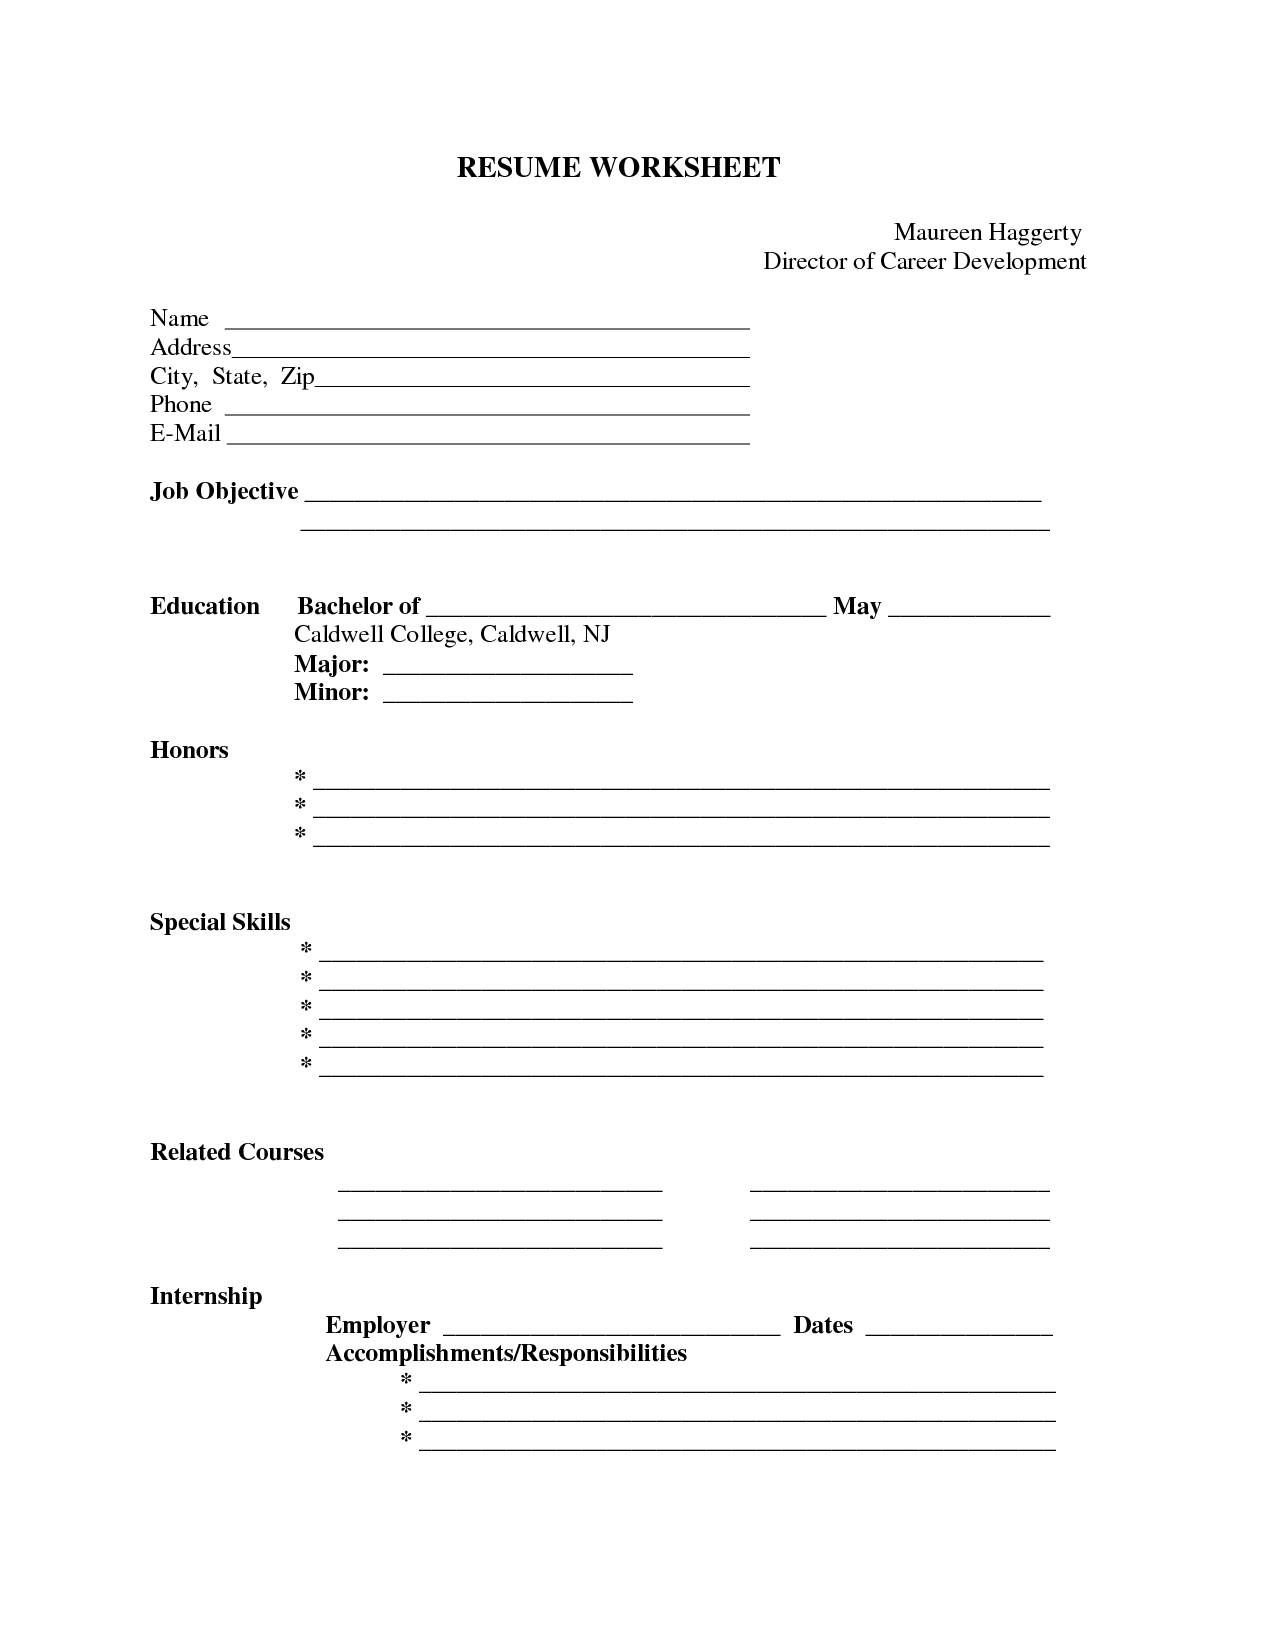 Pinresumejob On Resume Job | Free Printable Resume Templates - Free Printable Professional Resume Templates